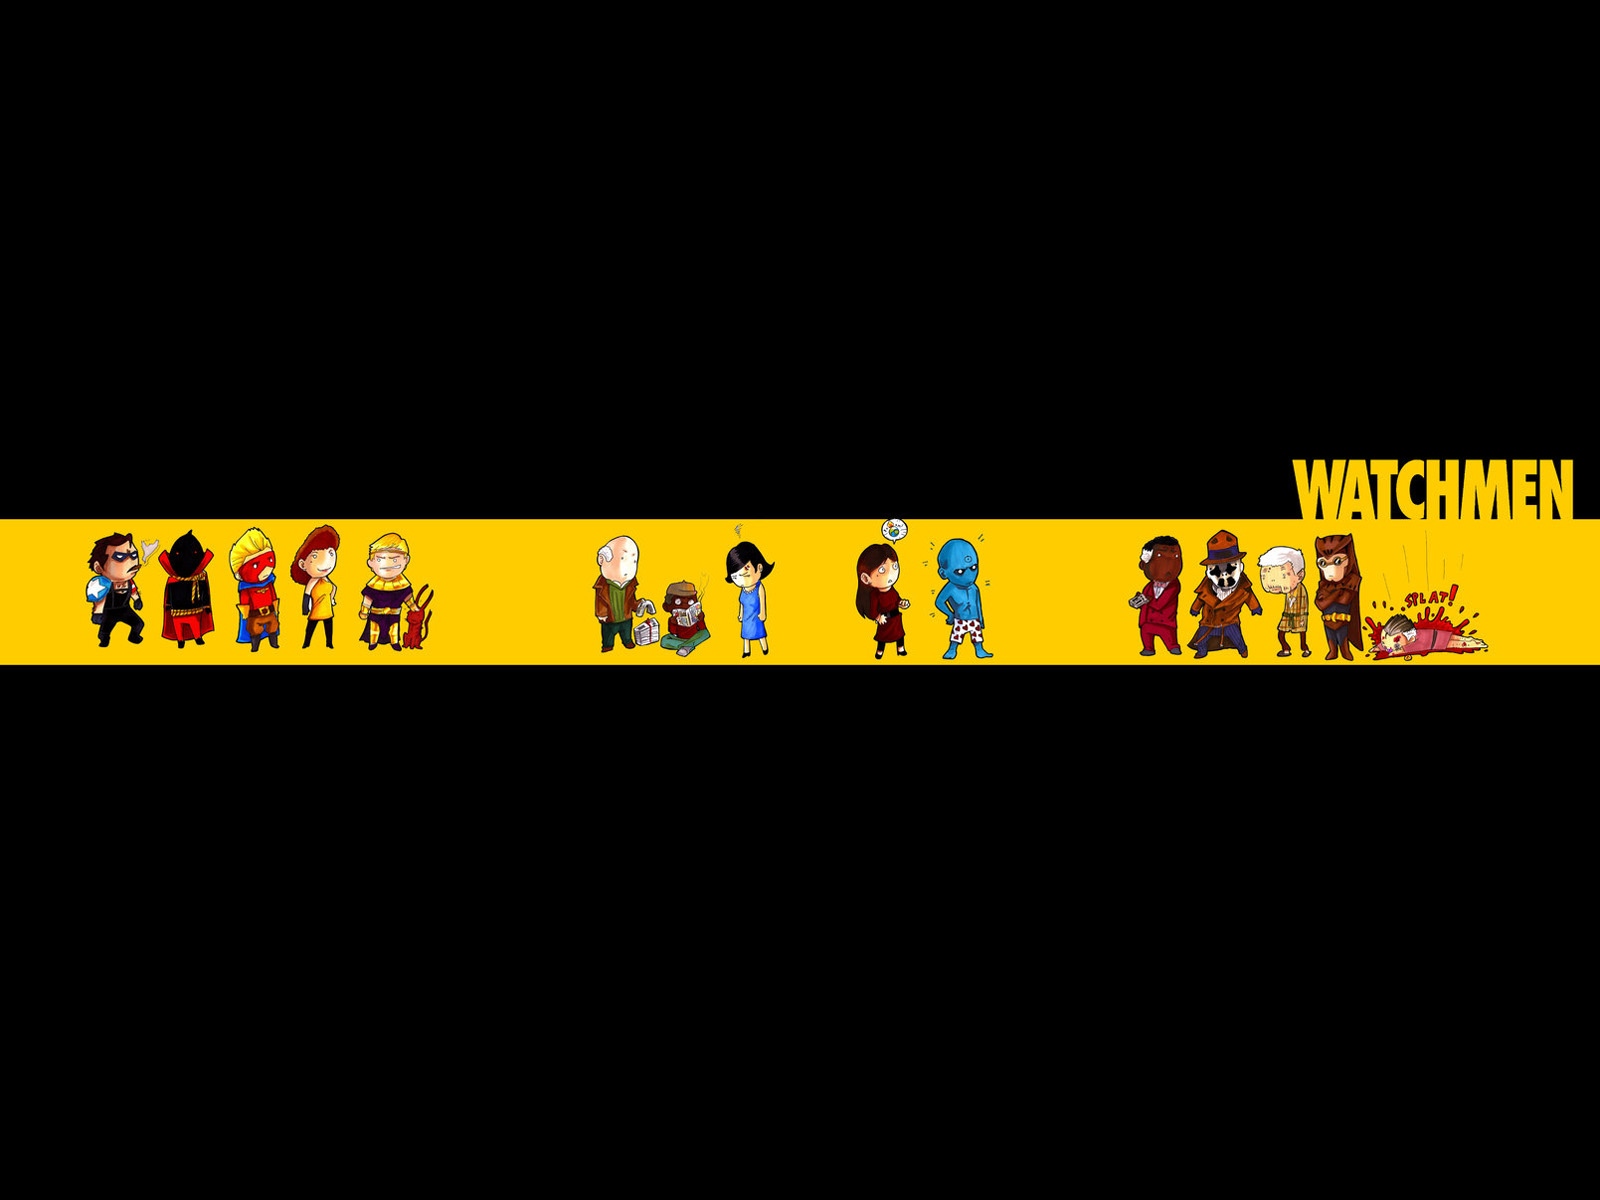 watchmen wallpaper and background image | 1600x1200 | id:443934